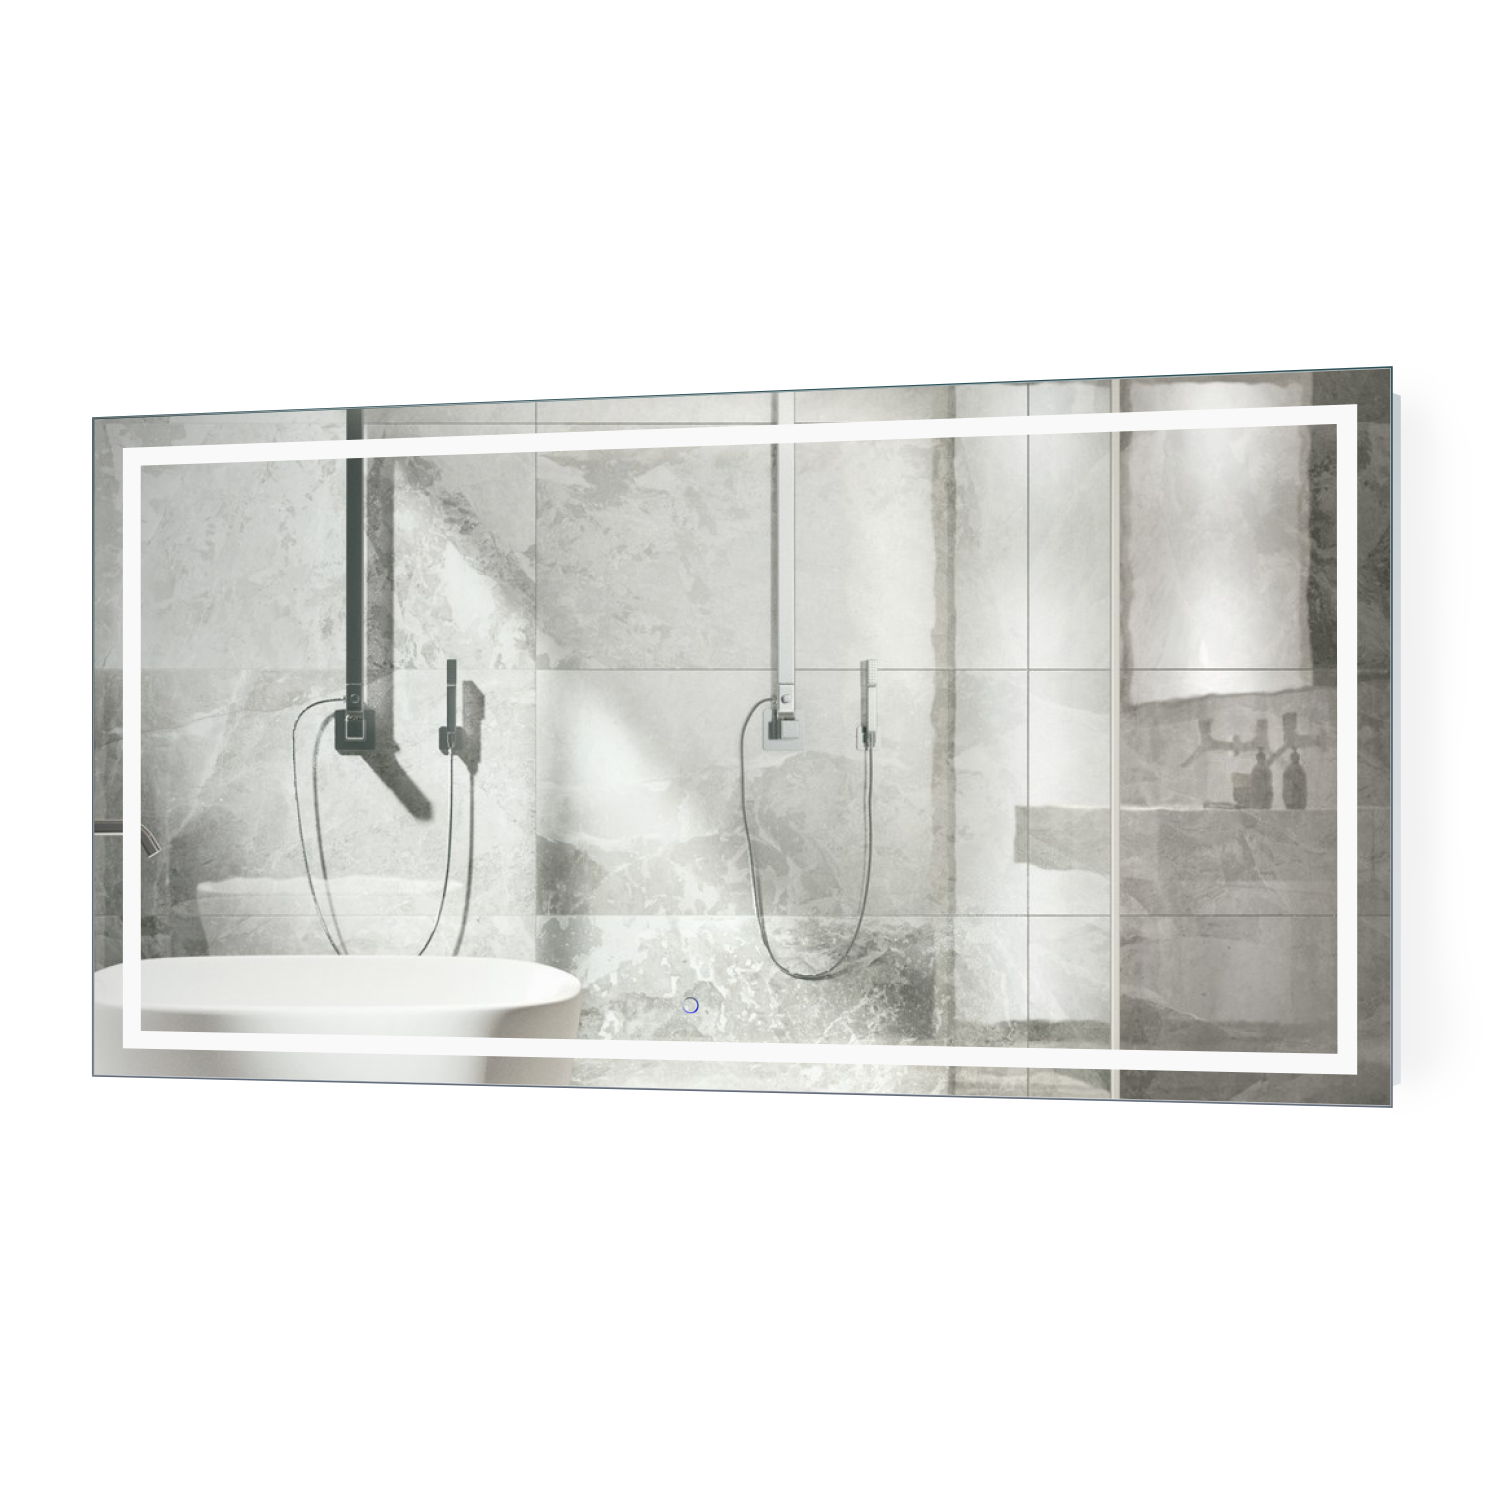 Icon 66 X 36 Led Bathroom Mirror W Dimmer Defogger Large Lighted Vanity Mirror Krugg Reflections Usa